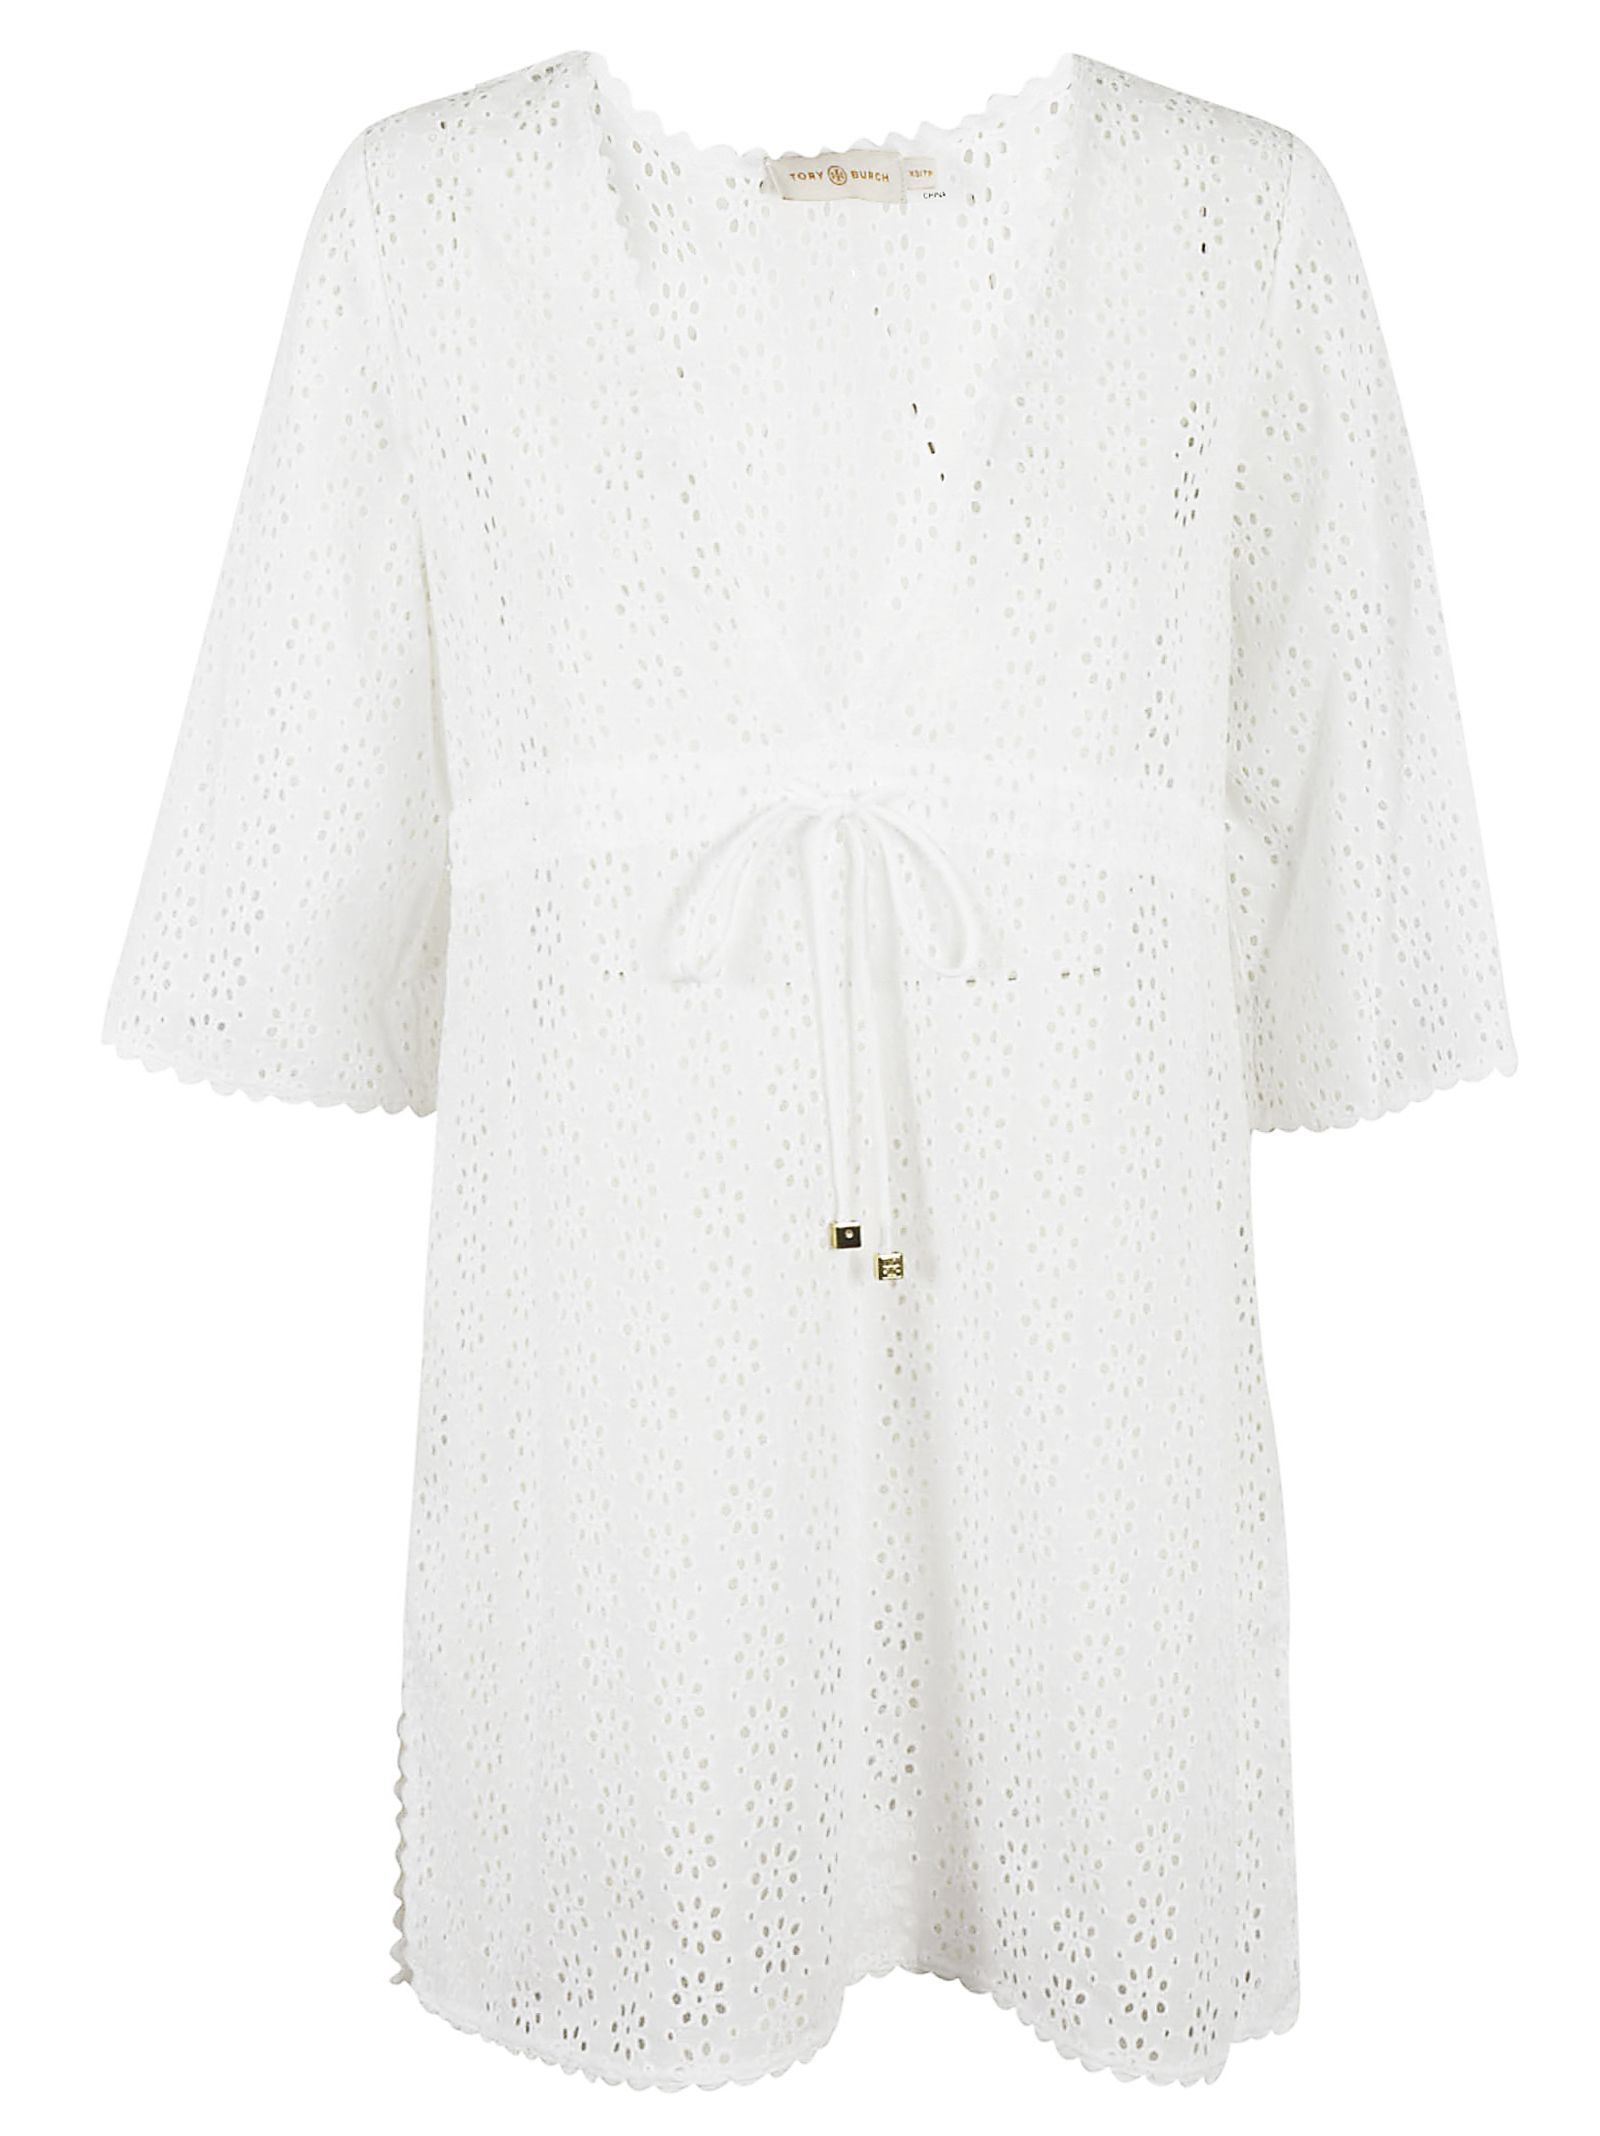 Tory Burch Perforated Dress